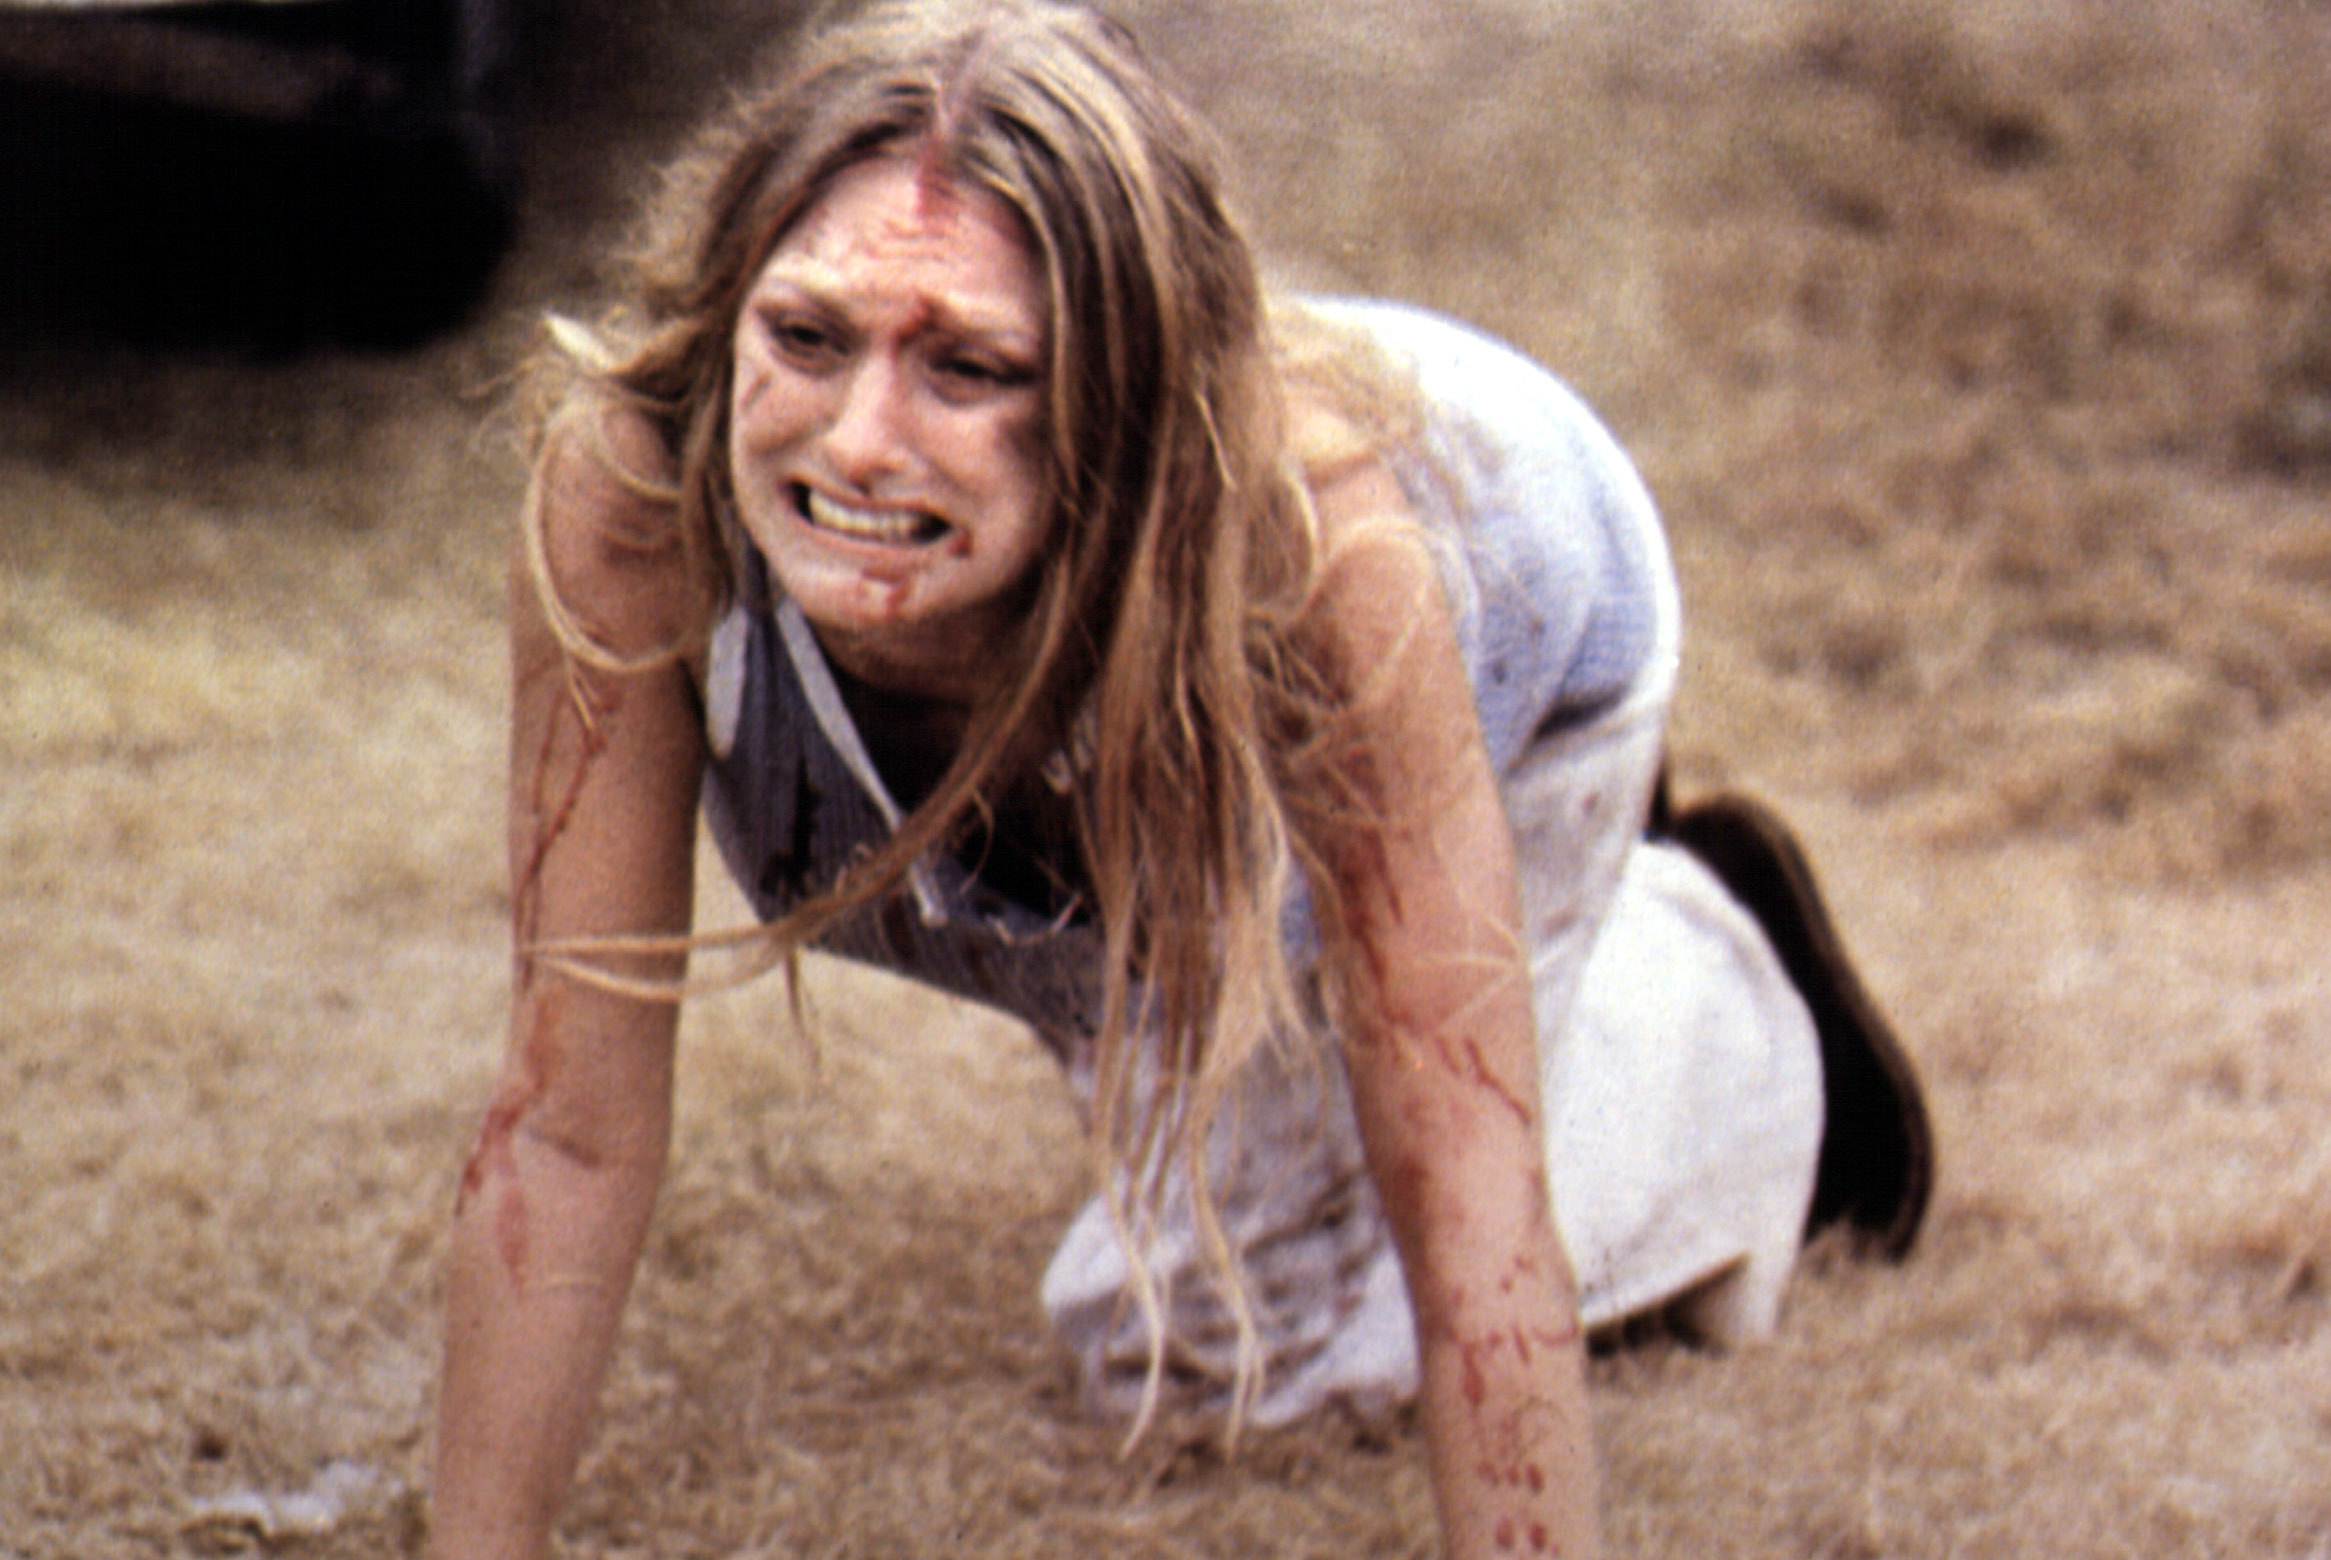 Marilyn Burns crawls on the ground bloody